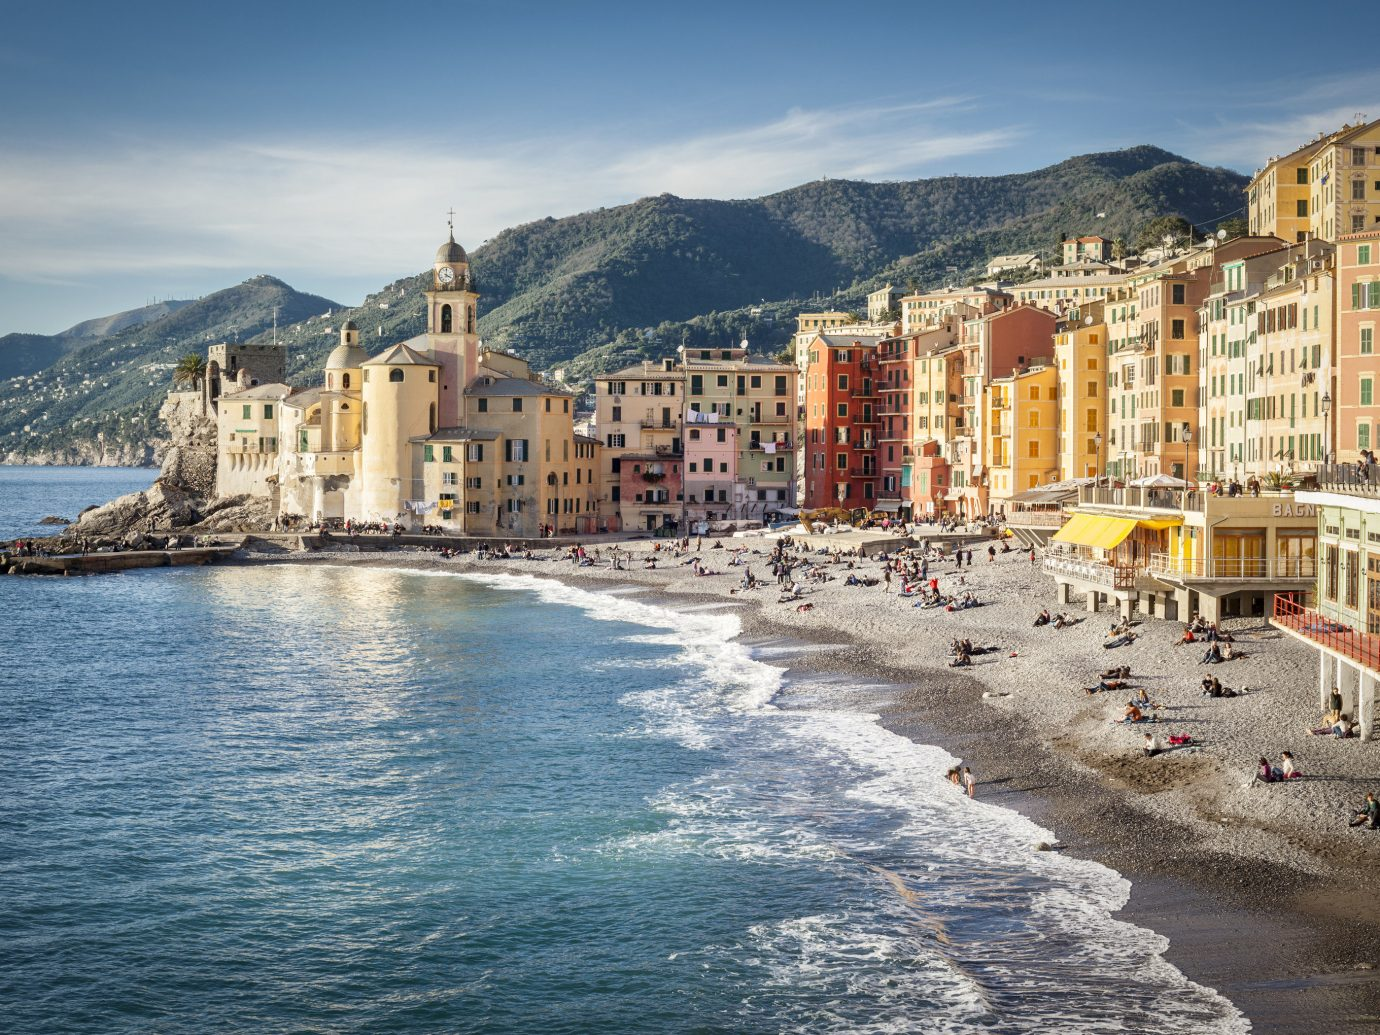 Italy Trip Ideas Sea sky City Coast Town water tourism tourist attraction terrain coastal and oceanic landforms promontory building Ocean cityscape vacation bay